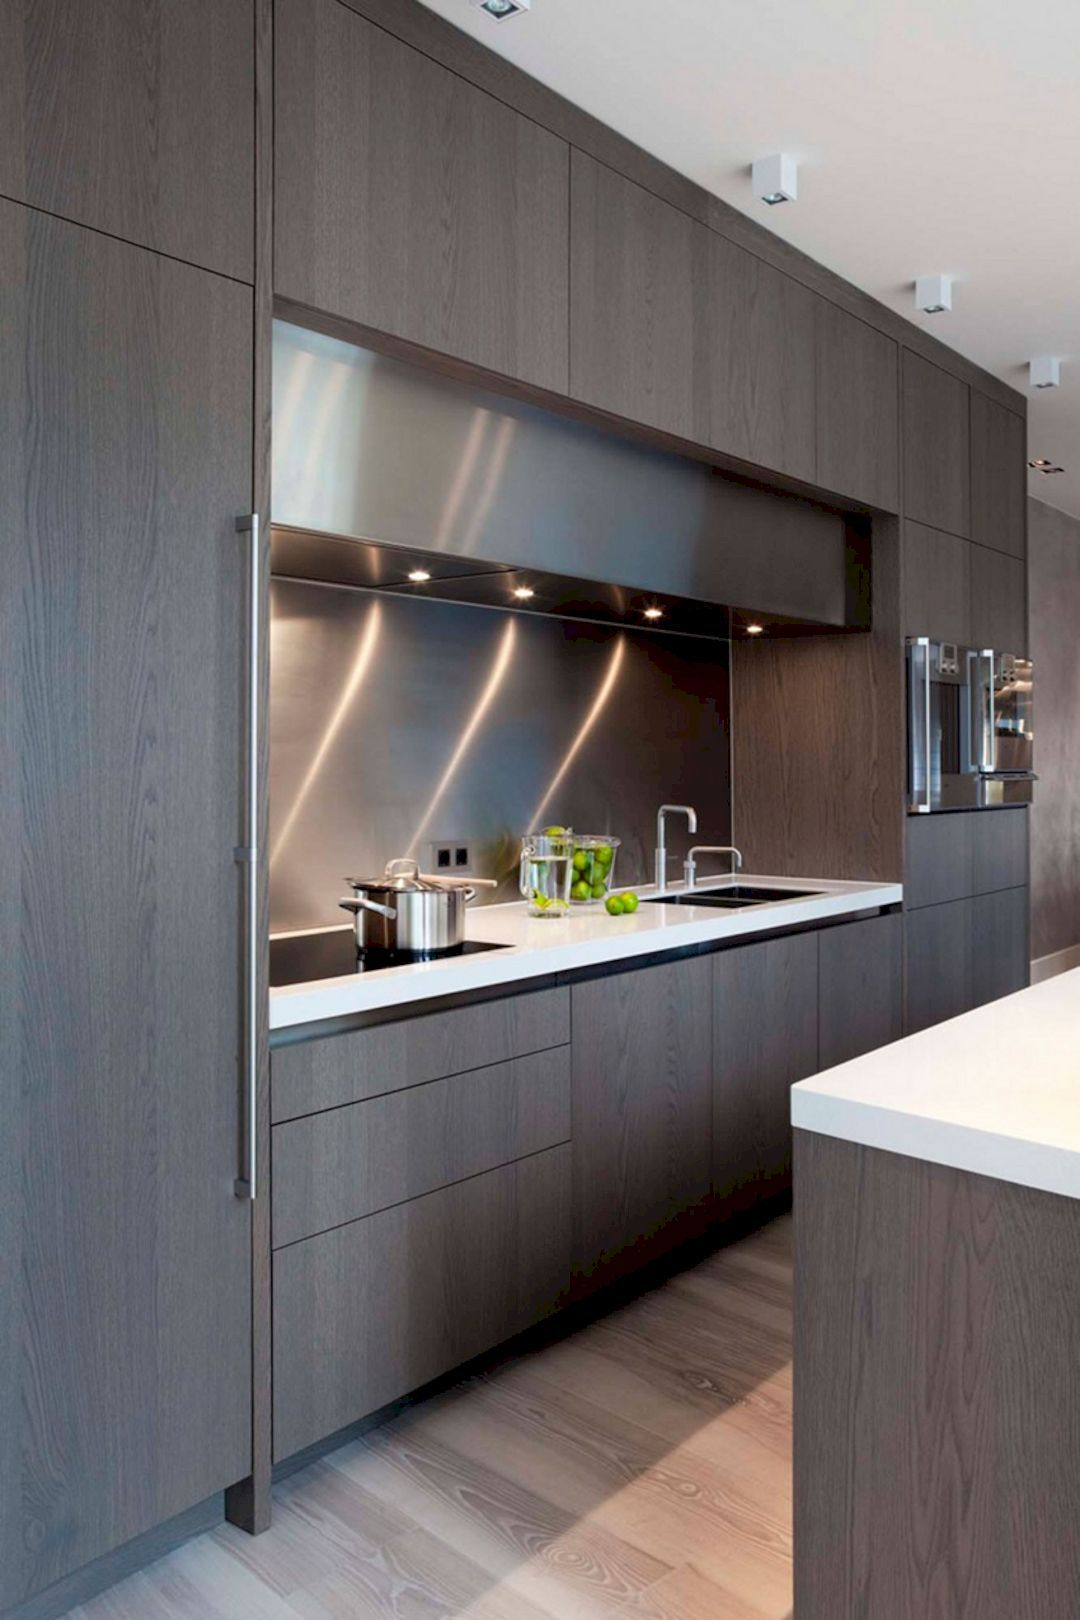 Stylish Modern Kitchen Cabinet: 127 Design Ideas  Https://www.futuristarchitecture.com/20591 Modern Kitchen Cabinet.html